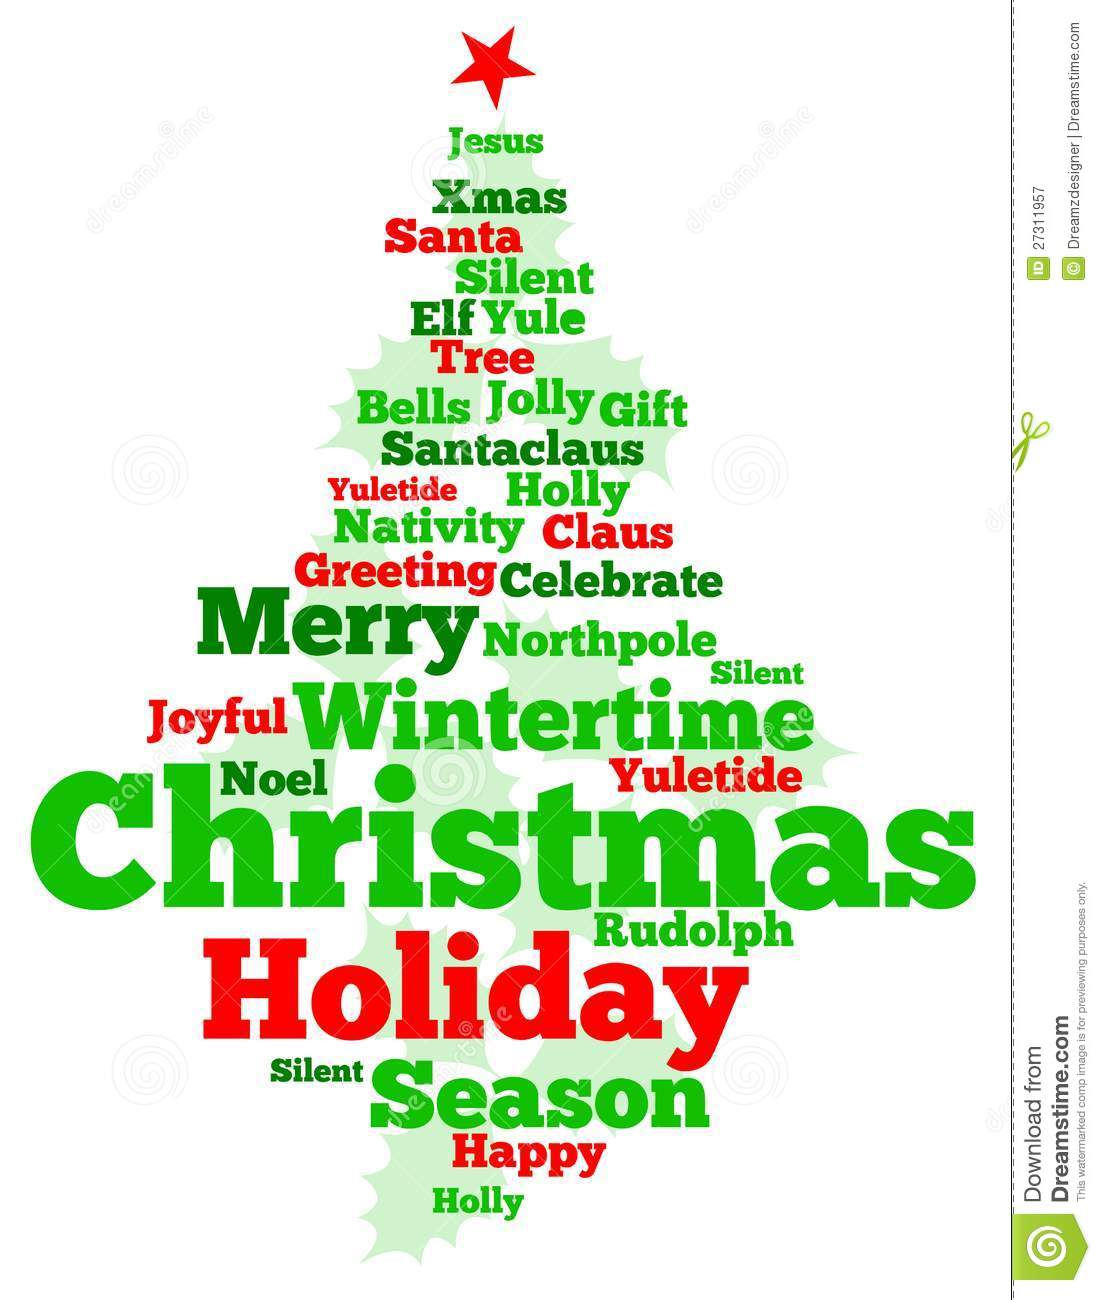 Christmas Tree Royalty Free Stock Photography - Image: 27311957